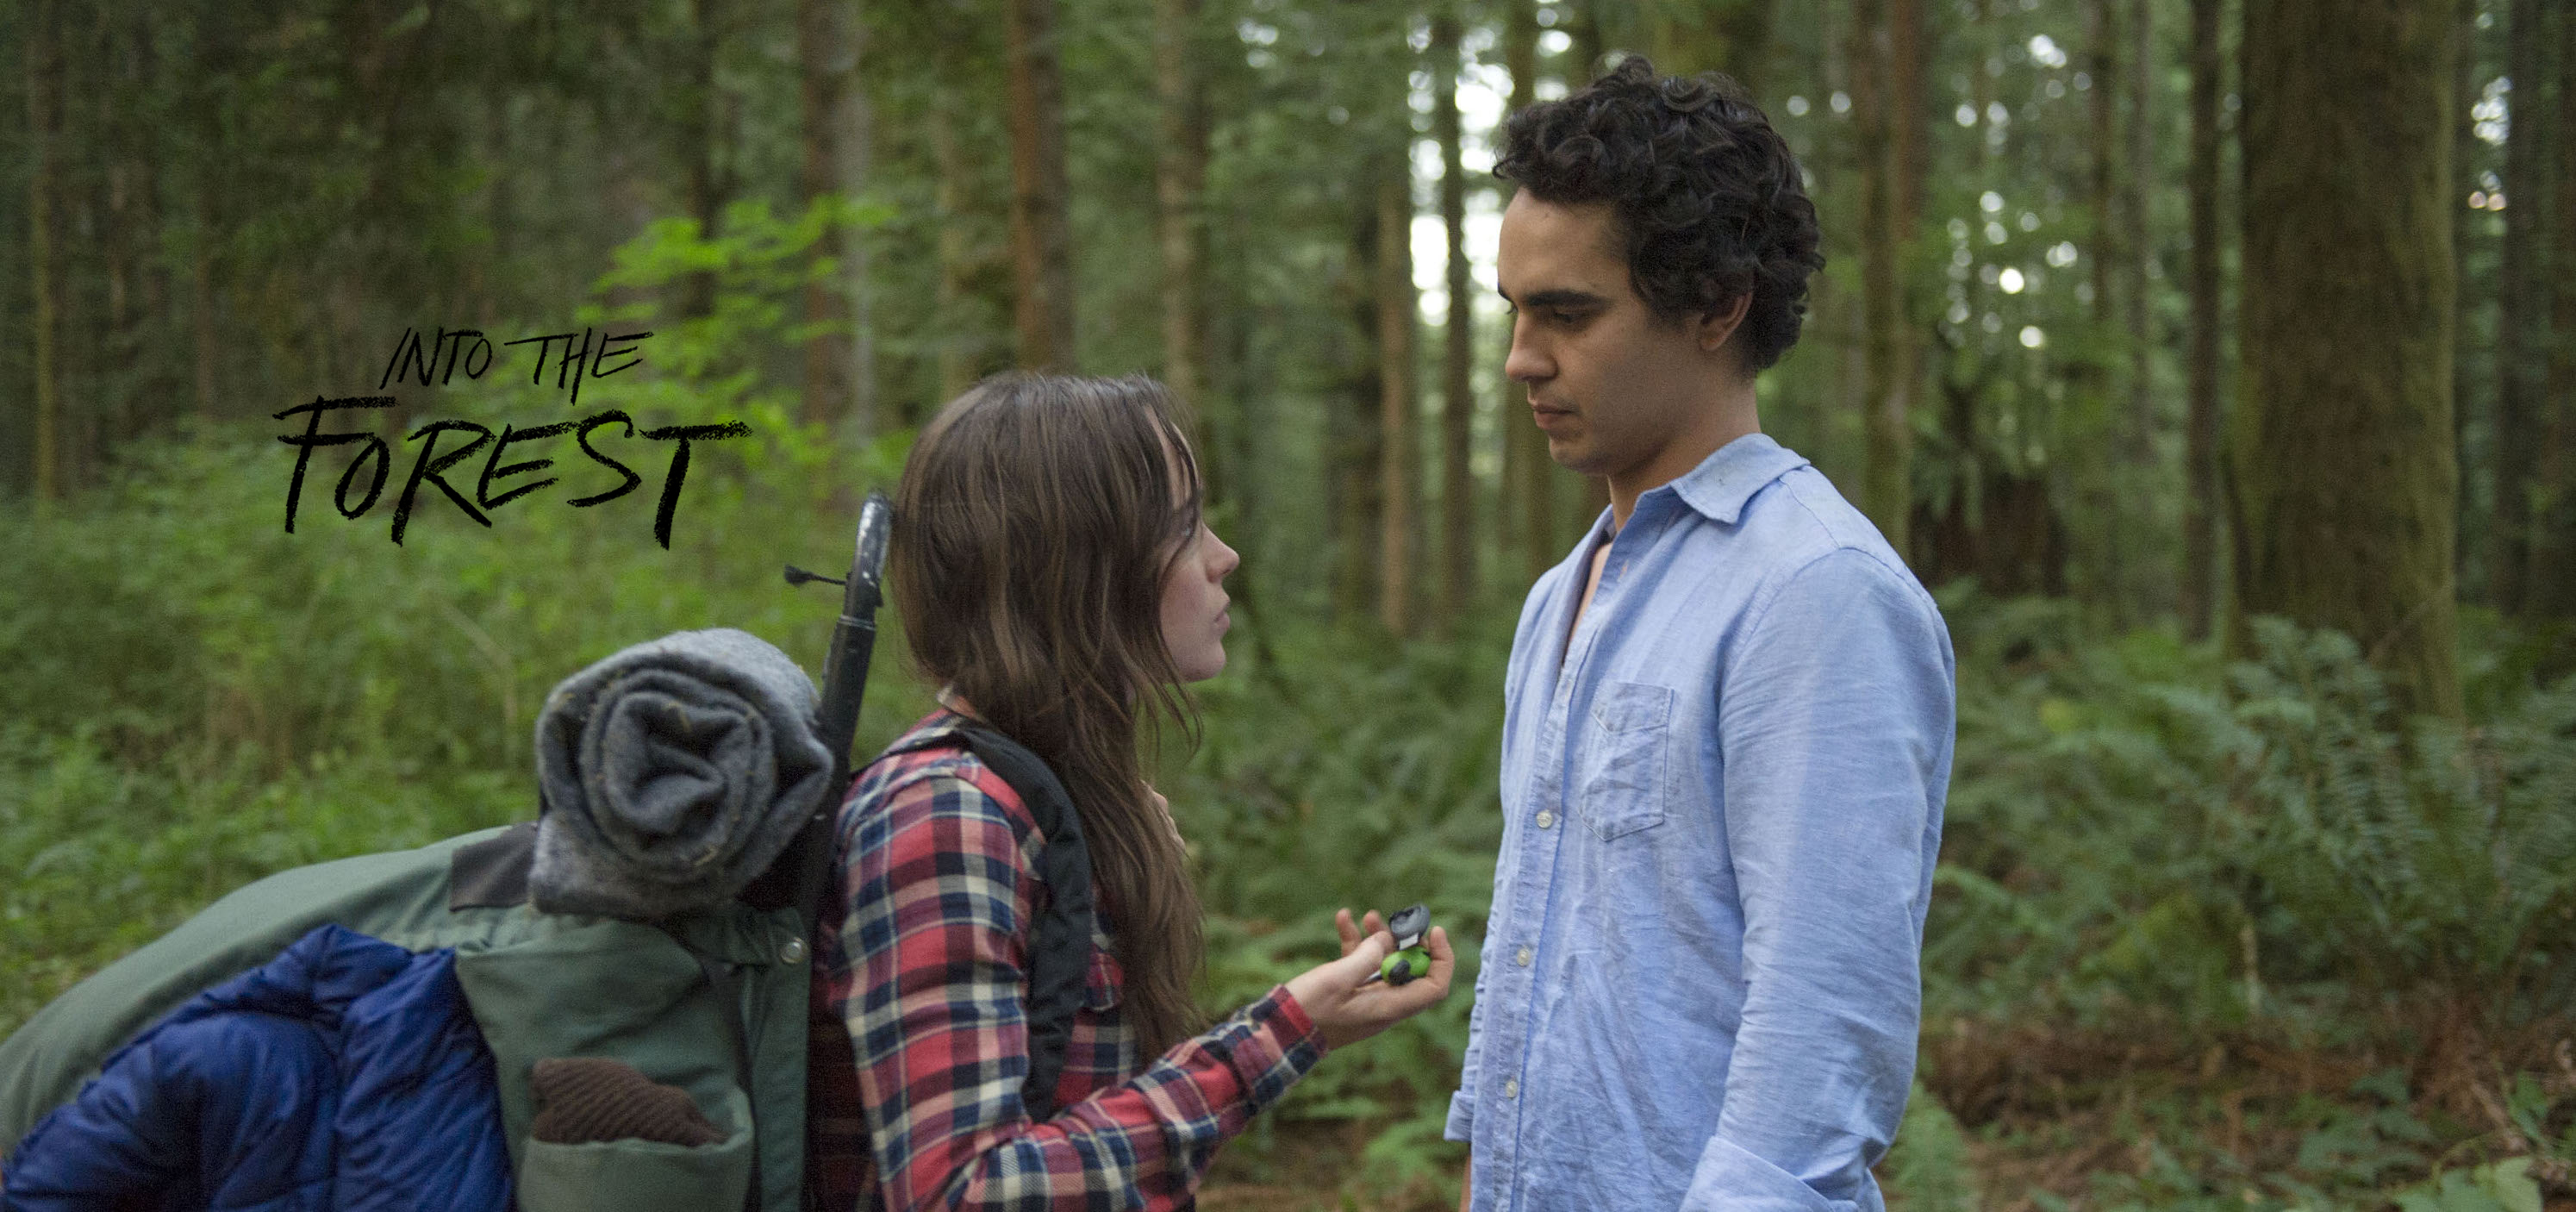 into-the-forest-ellen-page-max-minghella-02